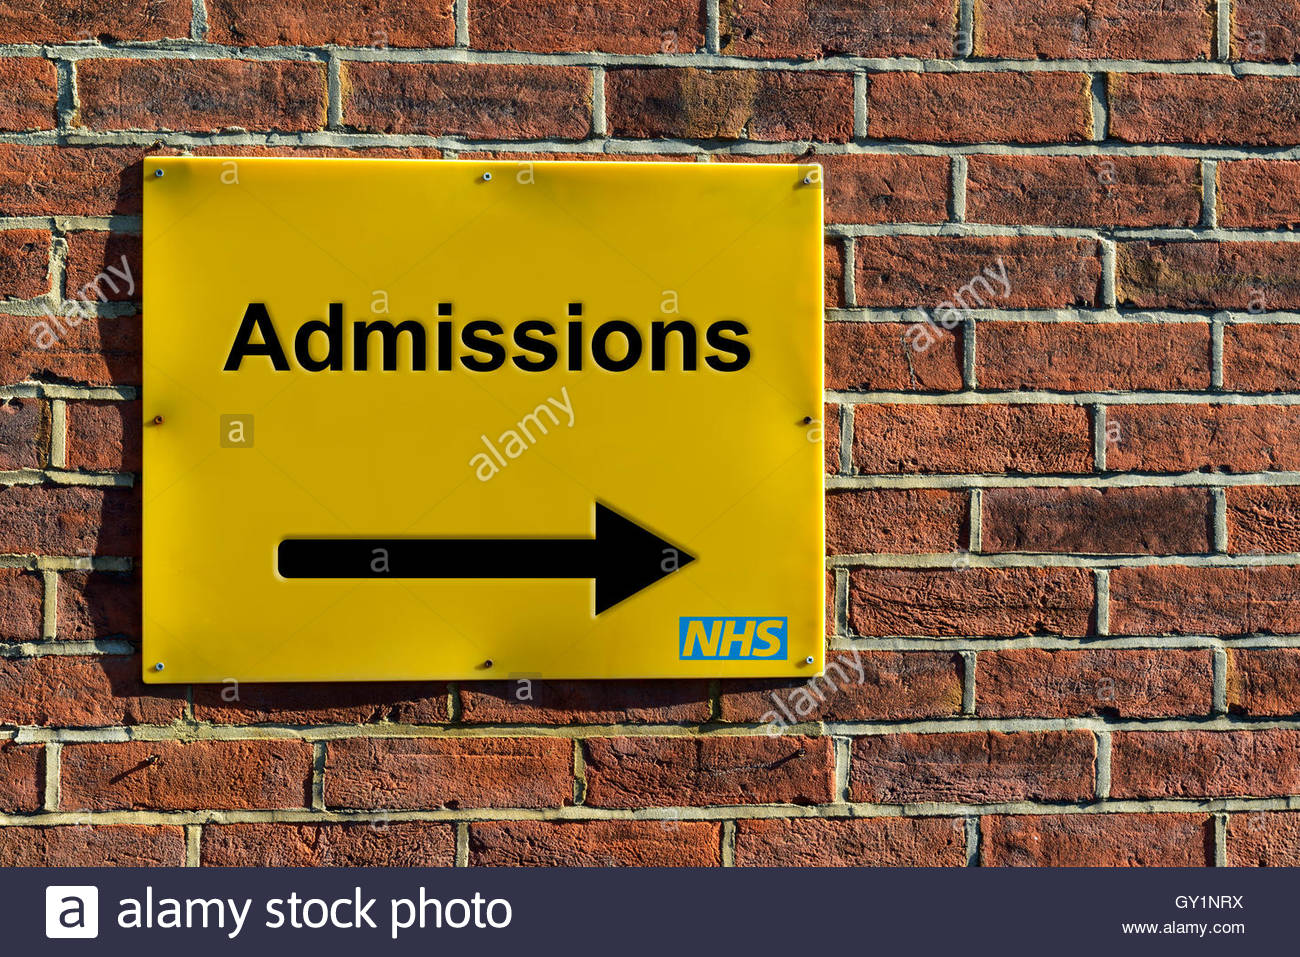 Admissions, NHS wall mounted direction sign. - Stock Image